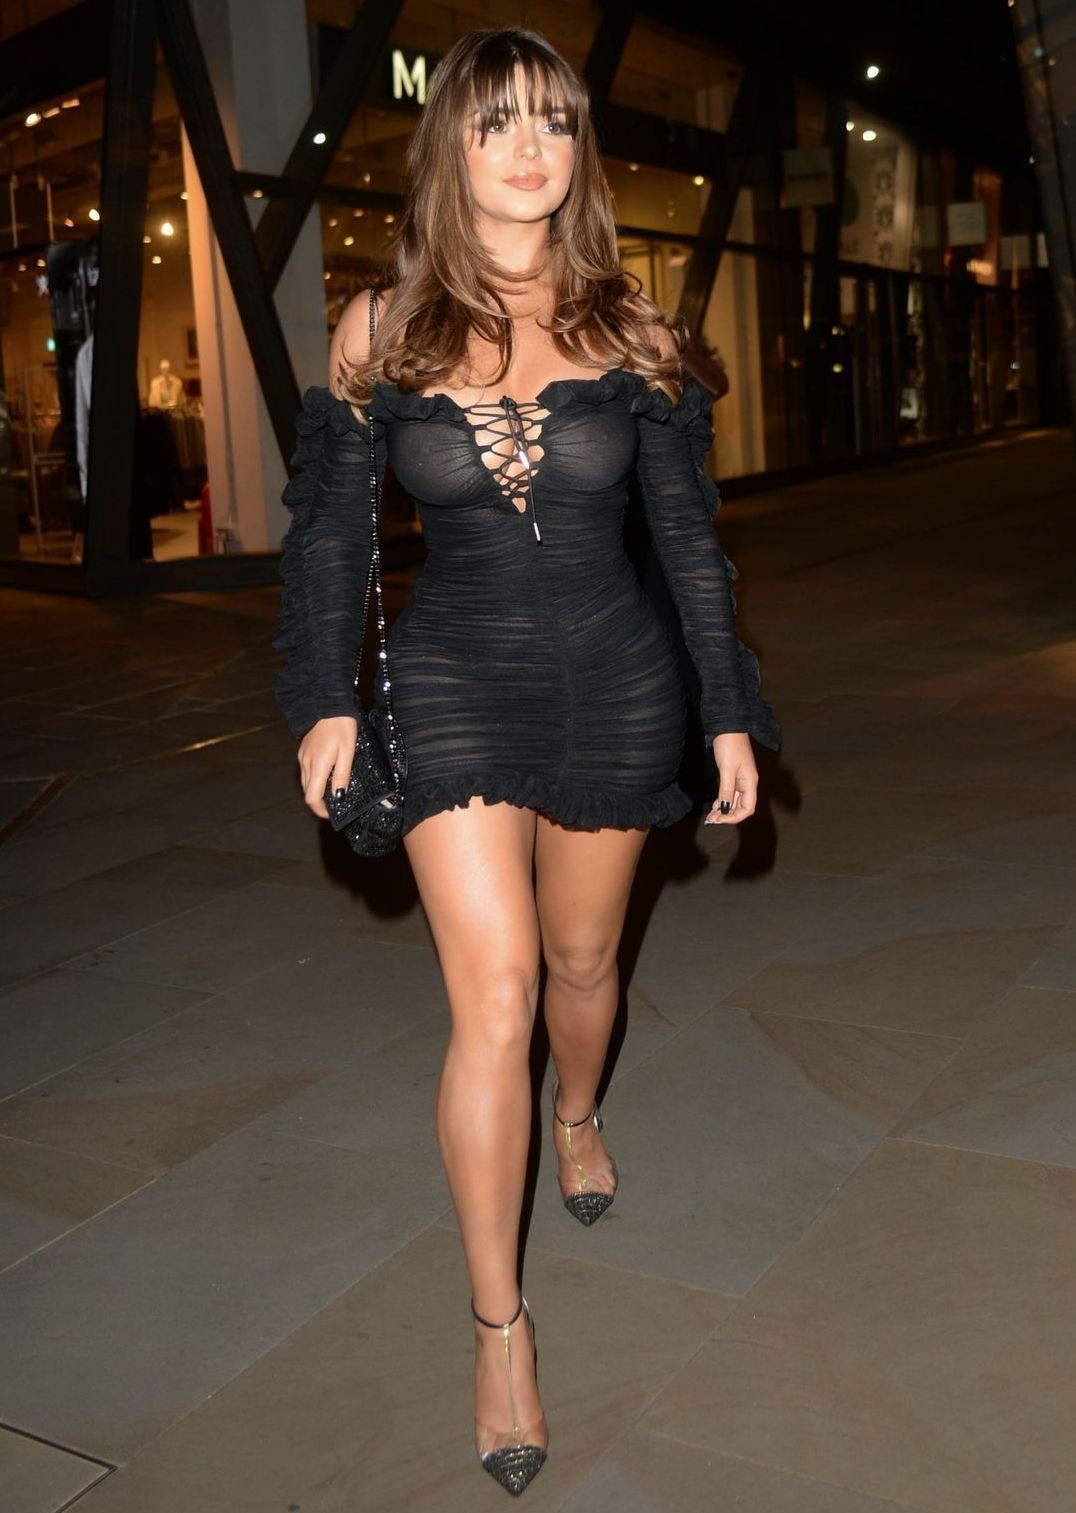 Demi Rose Mawby Braless See Through Dress